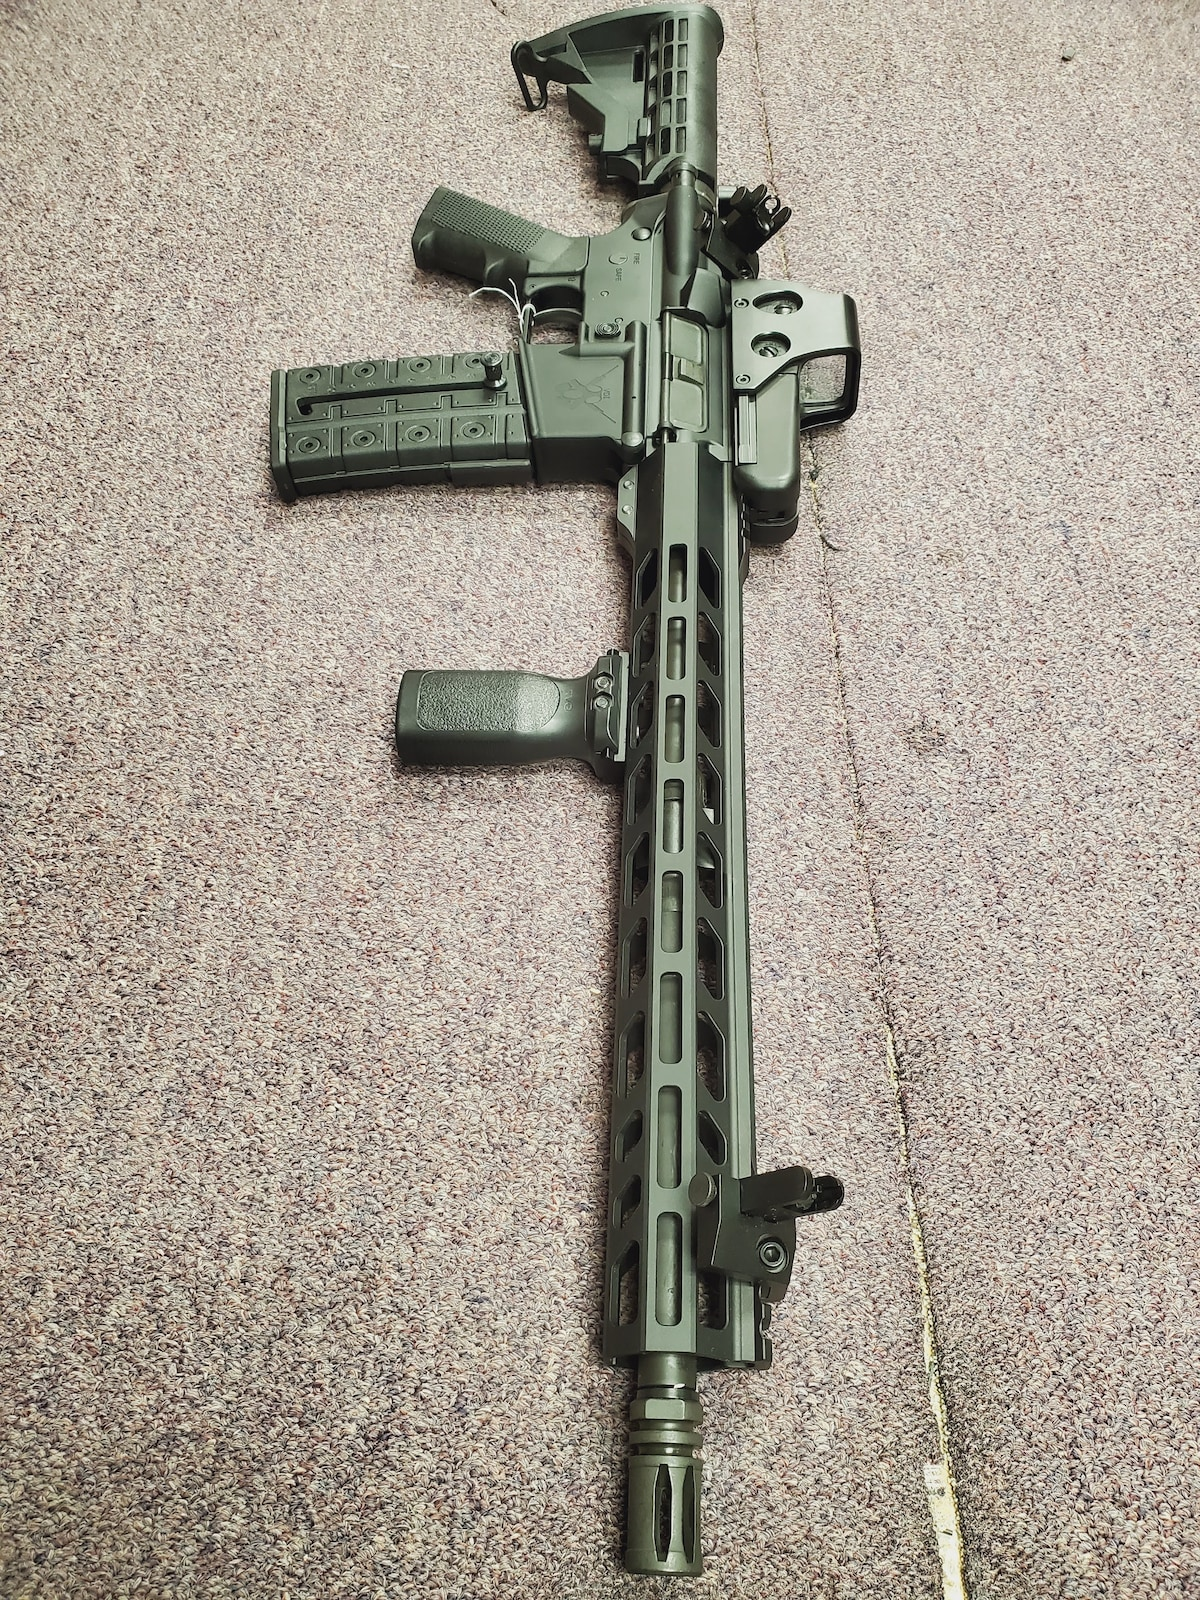 ADAMS ARMS Special Edition Fixed Magazine AA-15 with Red Dot & 45 degree iron sight & foregrip package